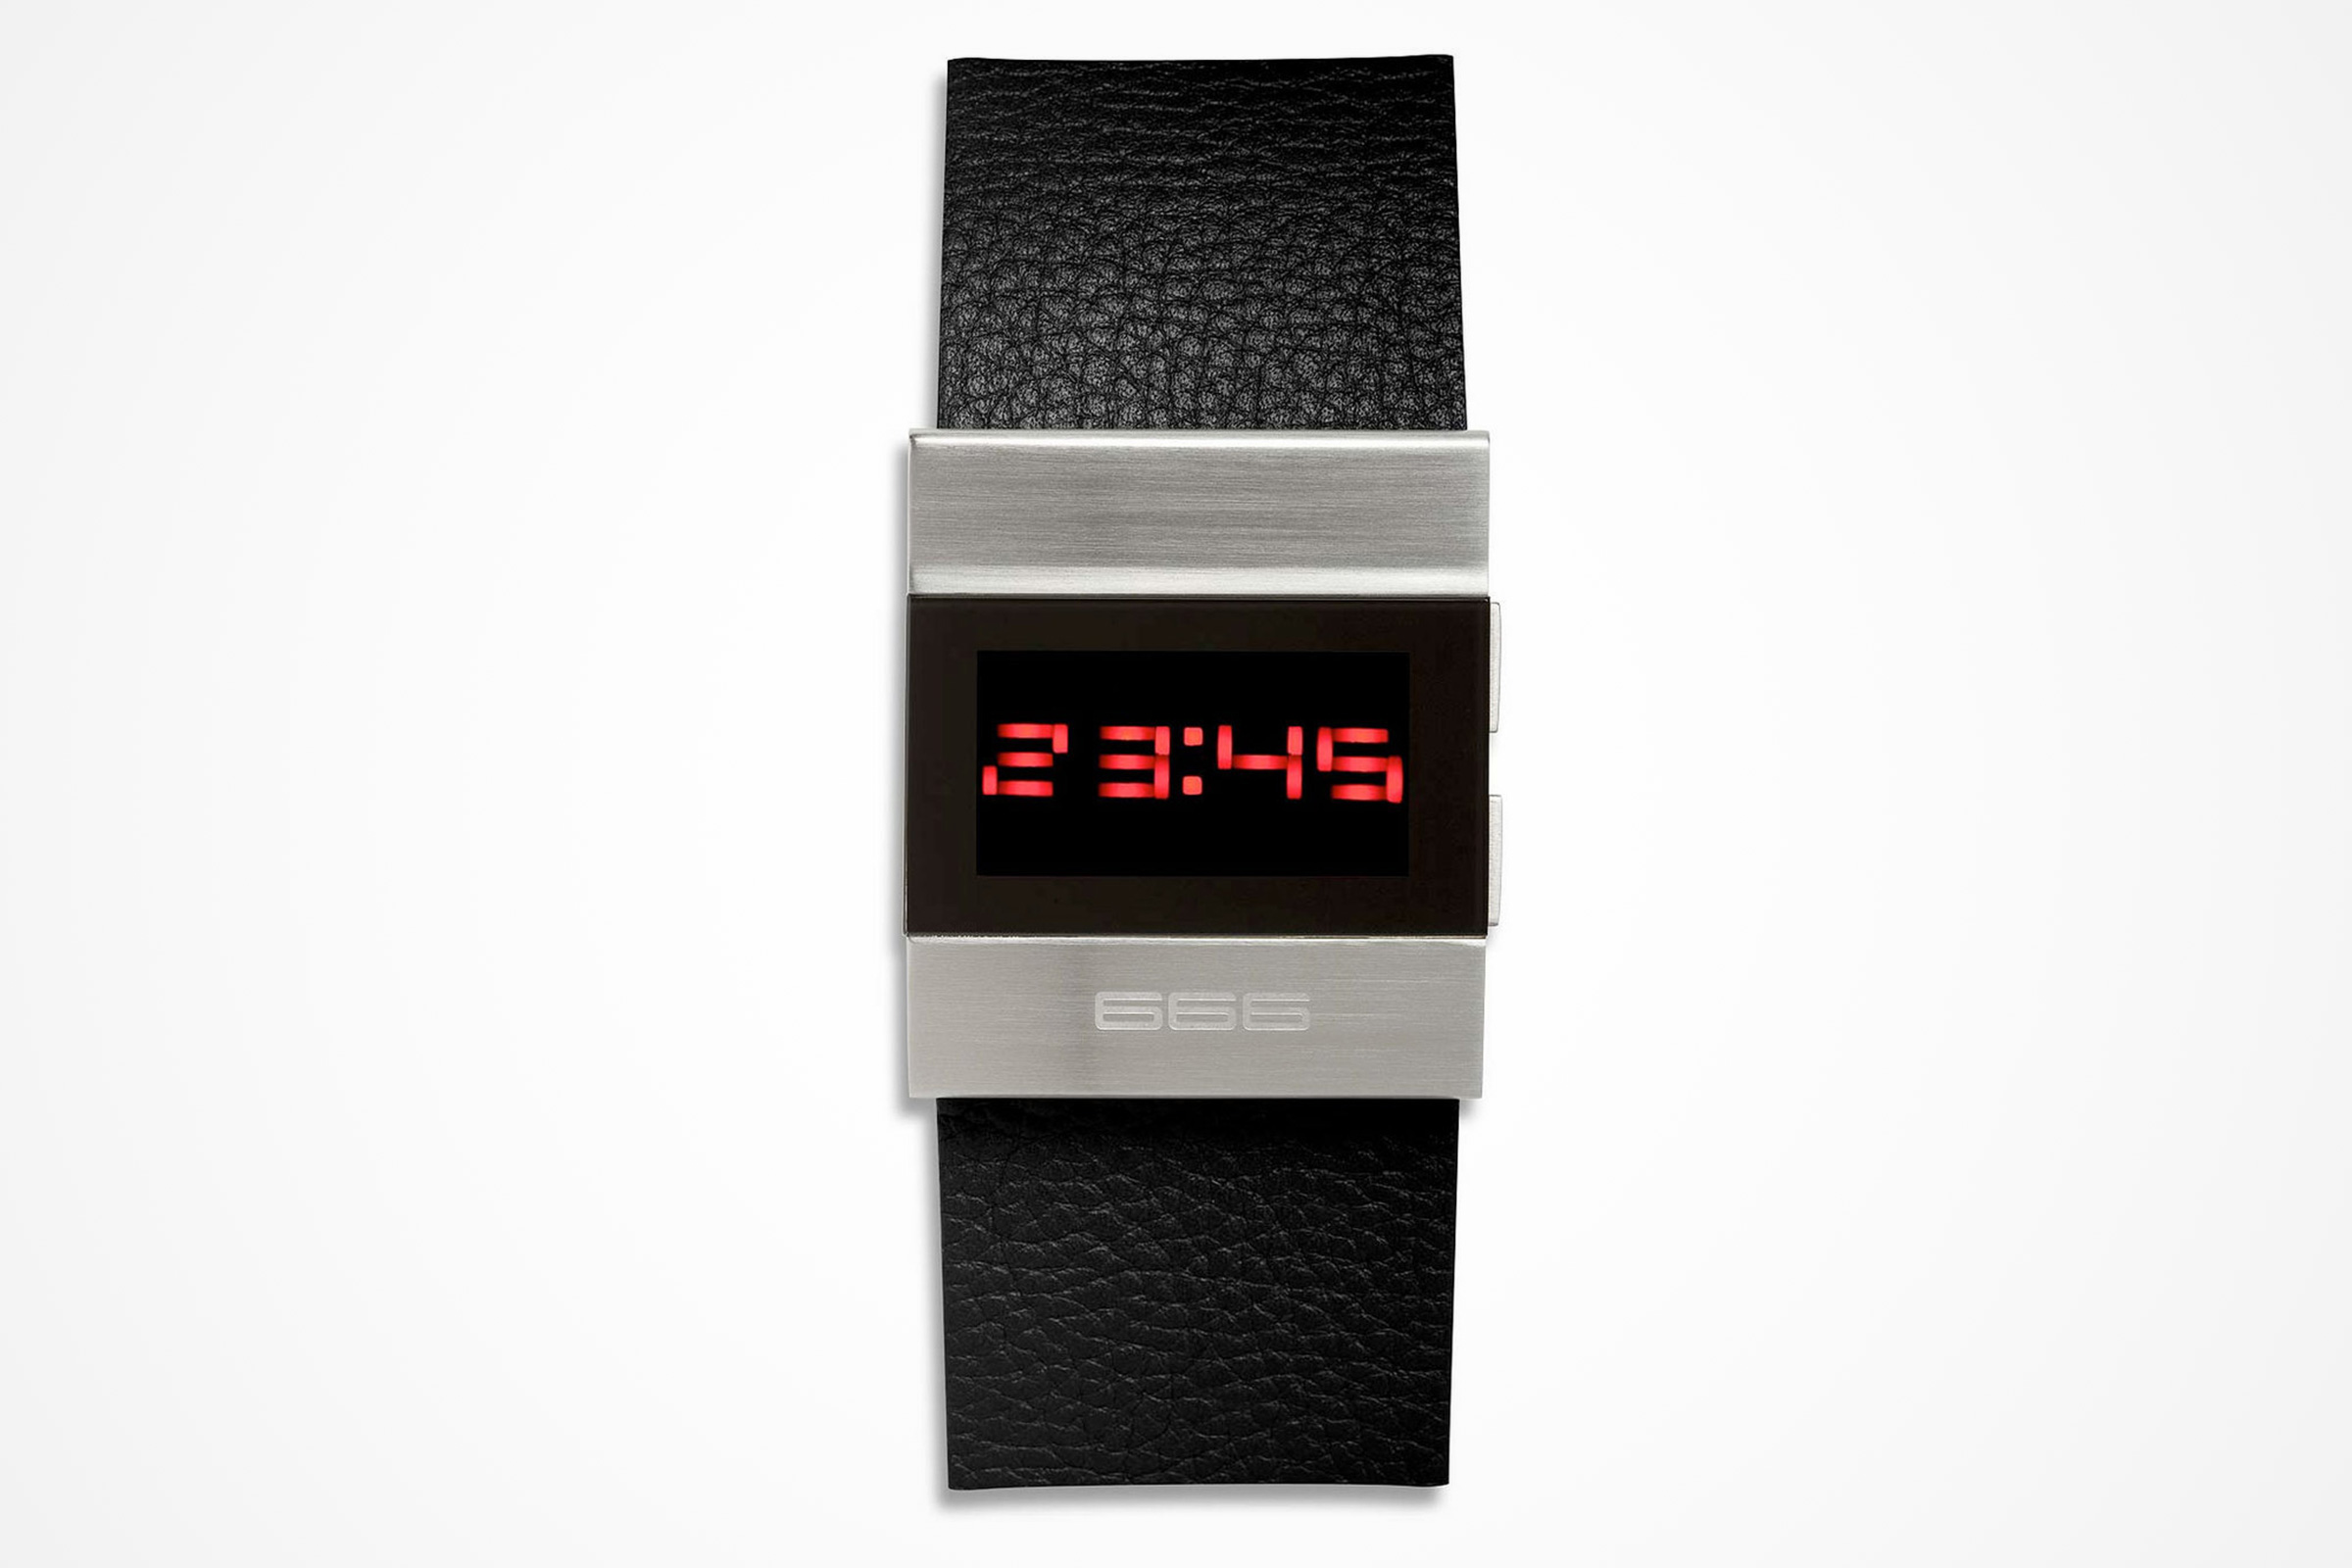 0e102f670134 ... watch by 666 Barcelona features on-command light-emitting diodes. 7  Attractively Minimal Digital Watches